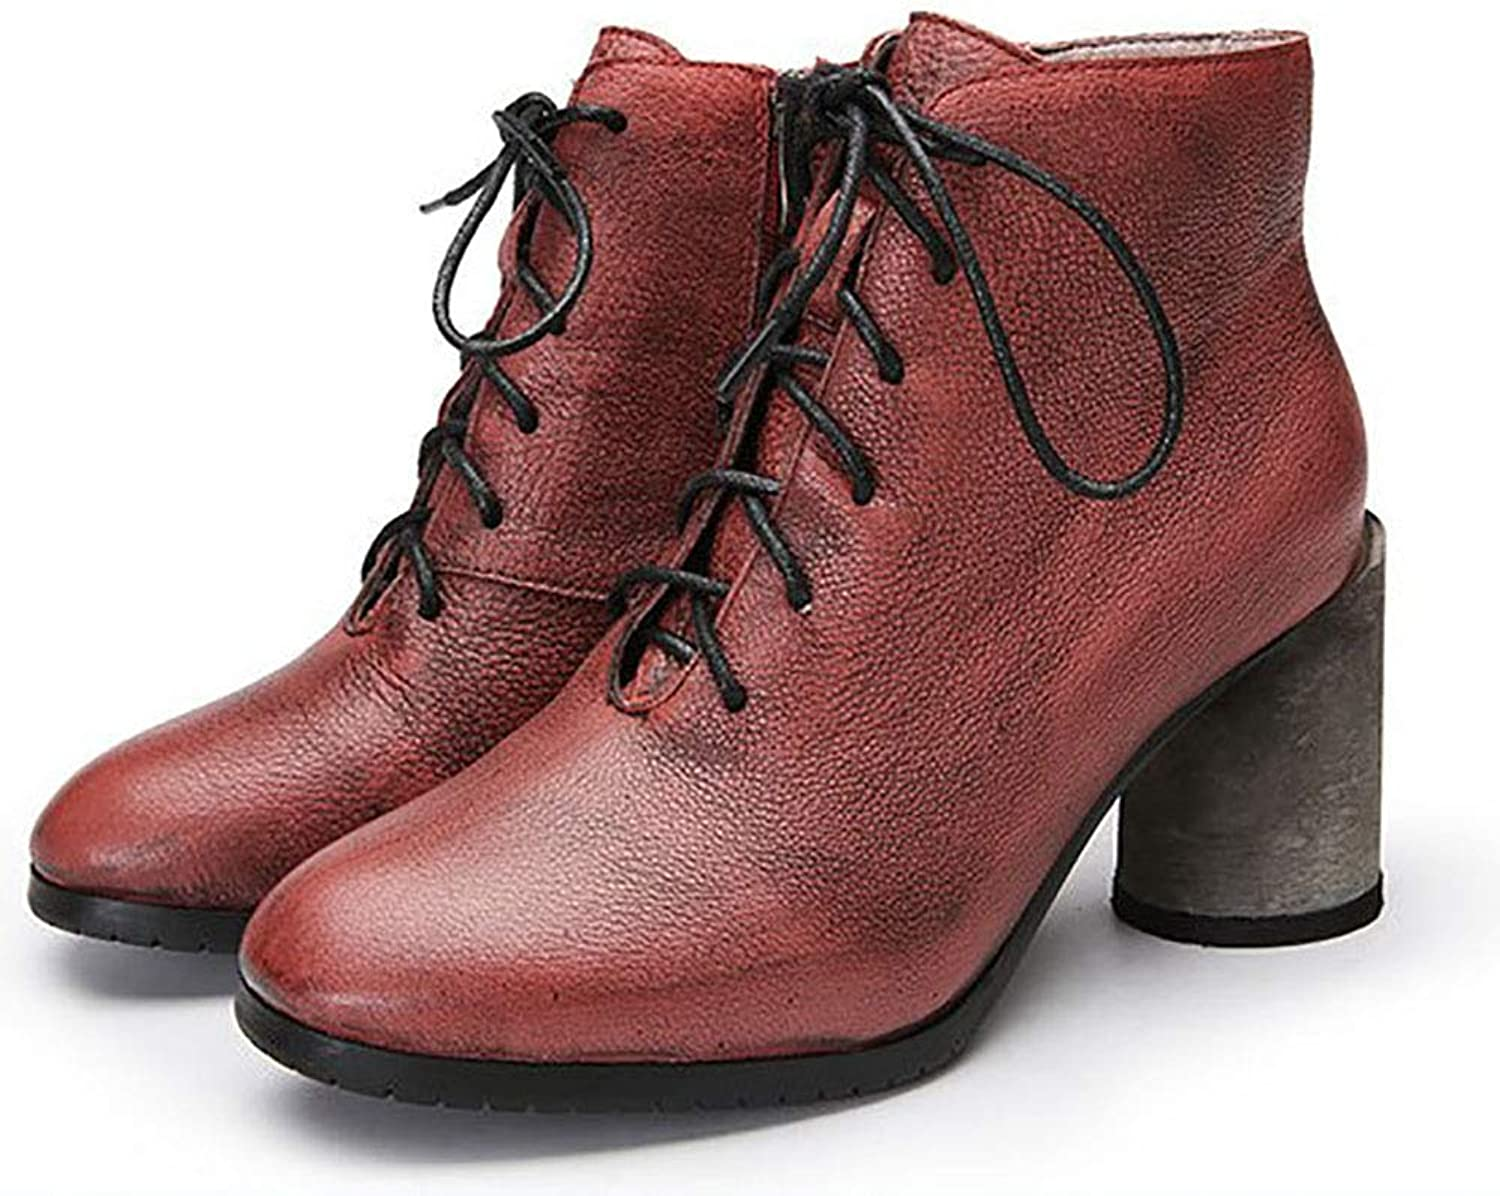 AW-YTXYDY Women's Retro Fashion Martin Boots, Cowhide Material, Work Shopping Travel, Wear Slip Resistant (35-40 Yards) (color   RED, Size   35)